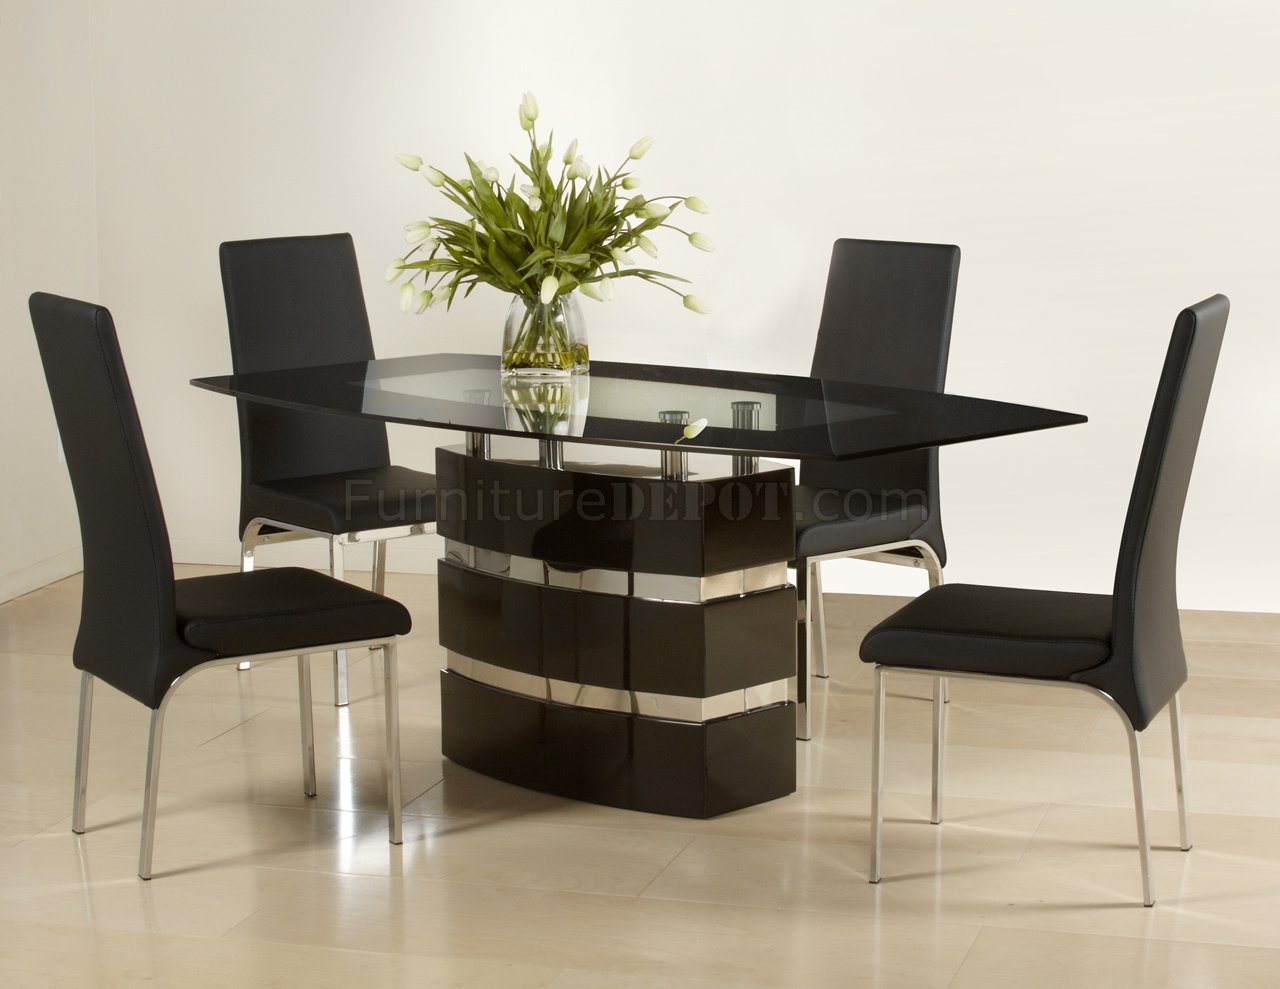 Contemporary Dining Room Table And Chairs Property black high gloss finish modern dining table w/optional chairs